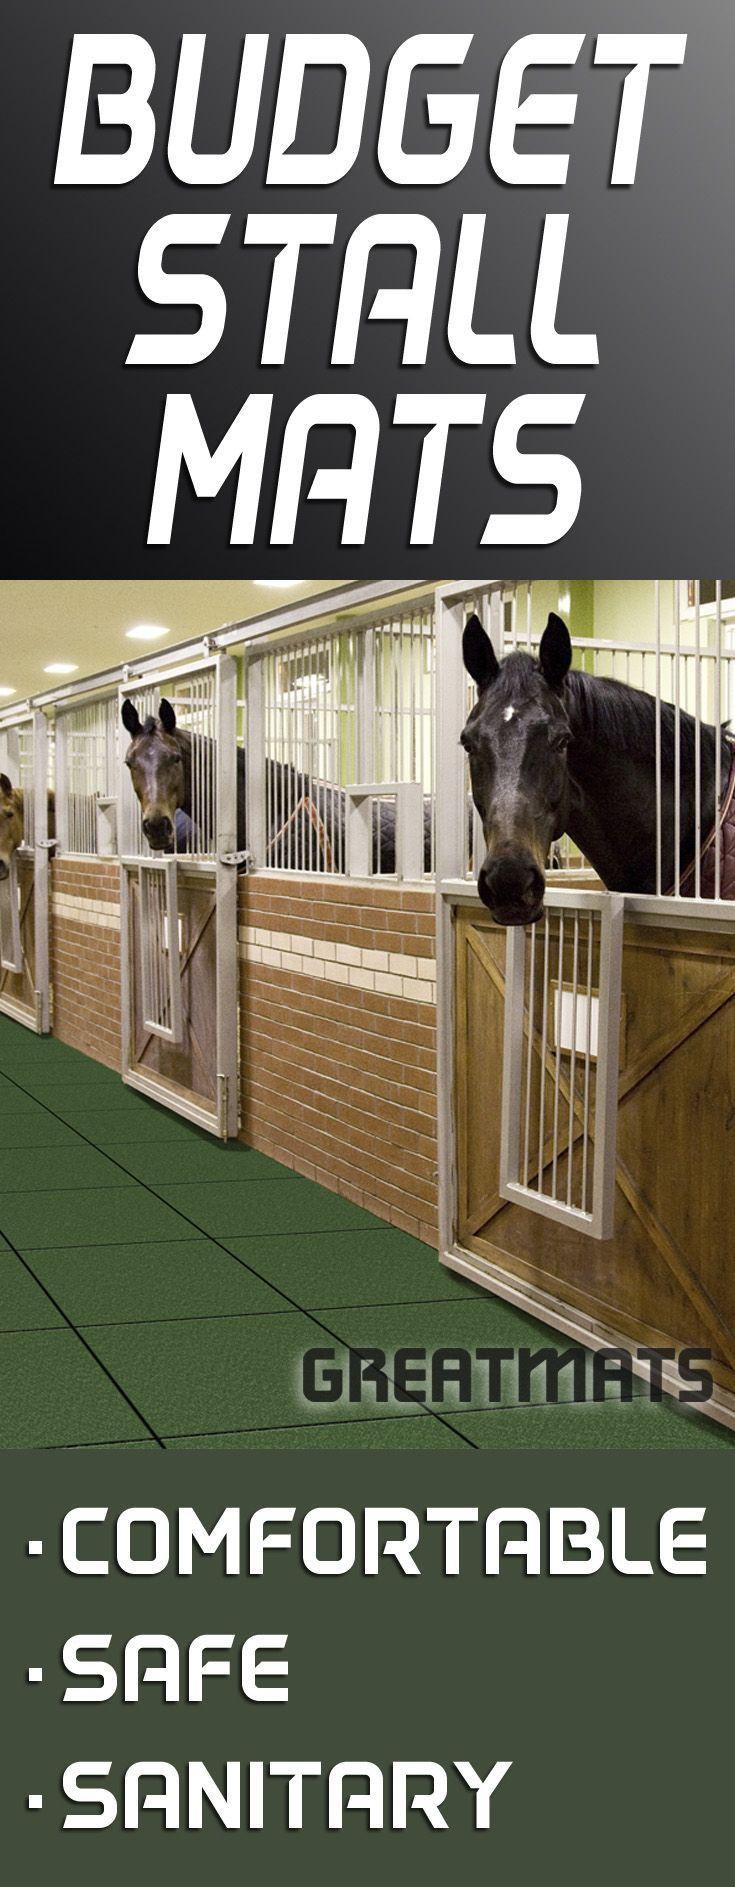 Horse stall mats don't have to be expensive. Here are some of the best stall mat options on a budget.